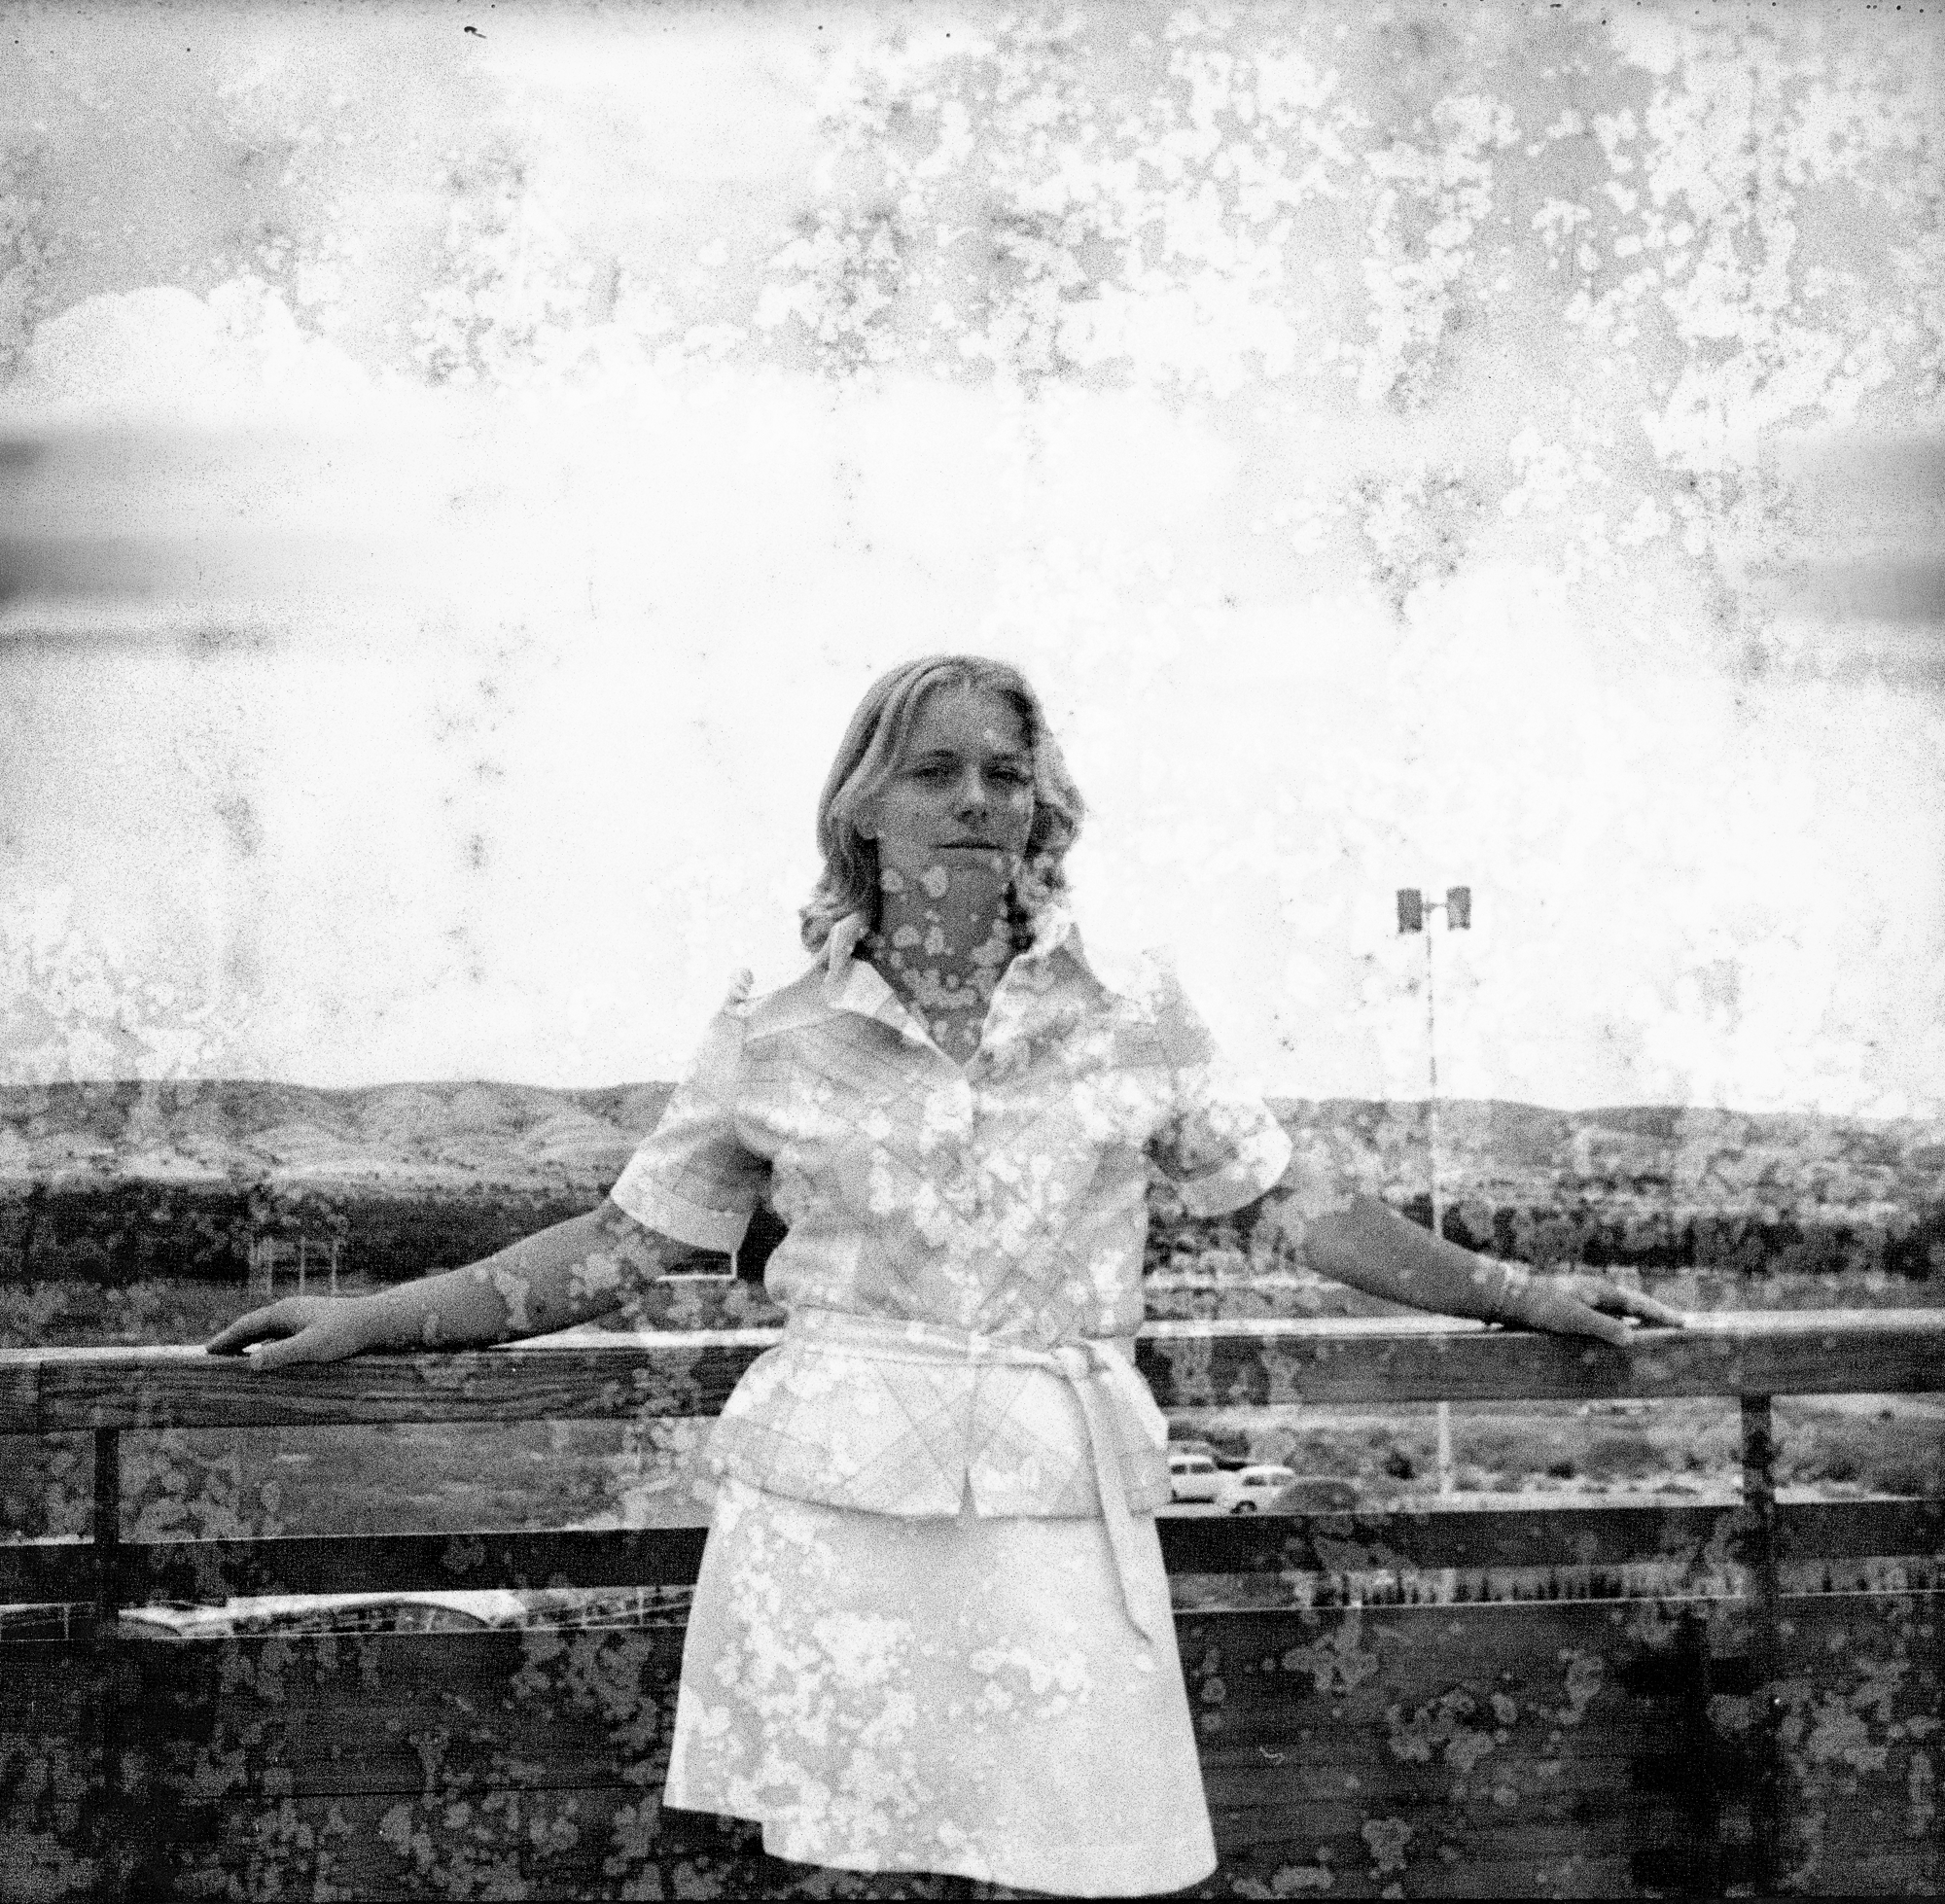 Image Description: In this image we have a teen or young adult stood in front of some fencing which is the same as the images with two young children (boy and girl) which are placed after photograph #3. The teen/young adult is leaning on the fencing, both her arms on either side placed on the top plank of the fence. She is wearing a white skirt, a light coloured plaid shirt with sleeves that end just before the elbow. The young lady has shoulder length light coloured hair. Not much scene in this photograph, except for sky, some green-land, a car park and the fencing behind her.